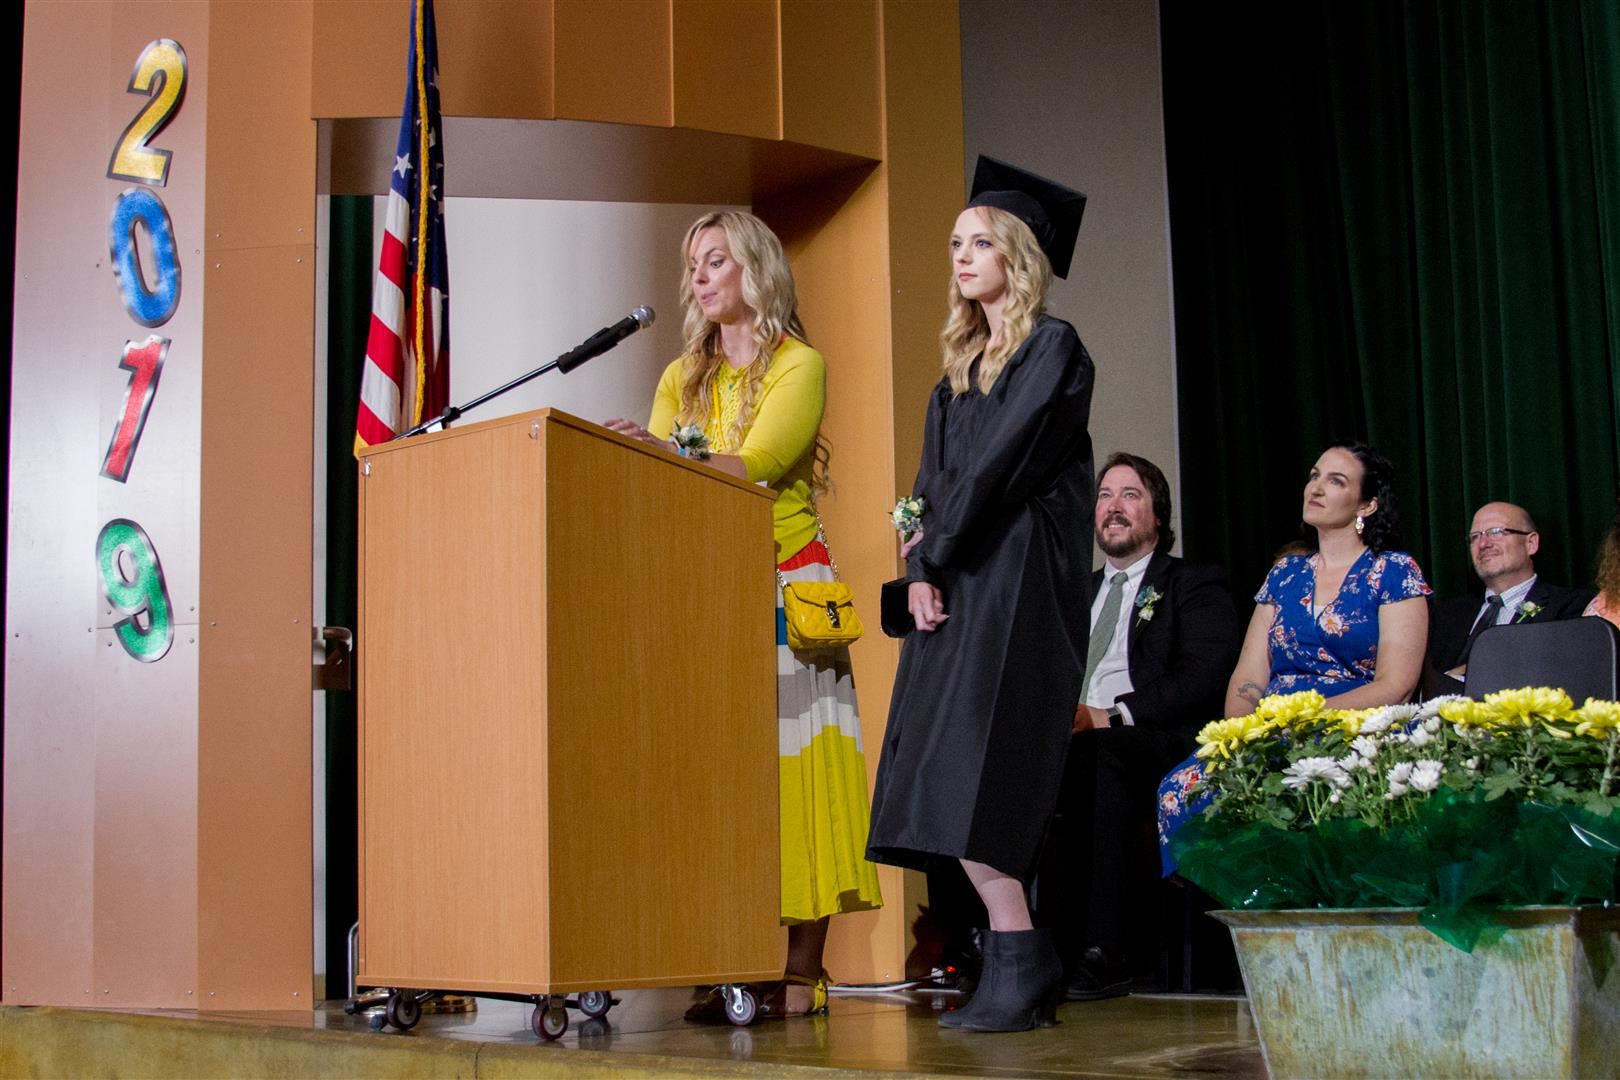 1560450007-team-high-class-of-2019-commencement-34__large_